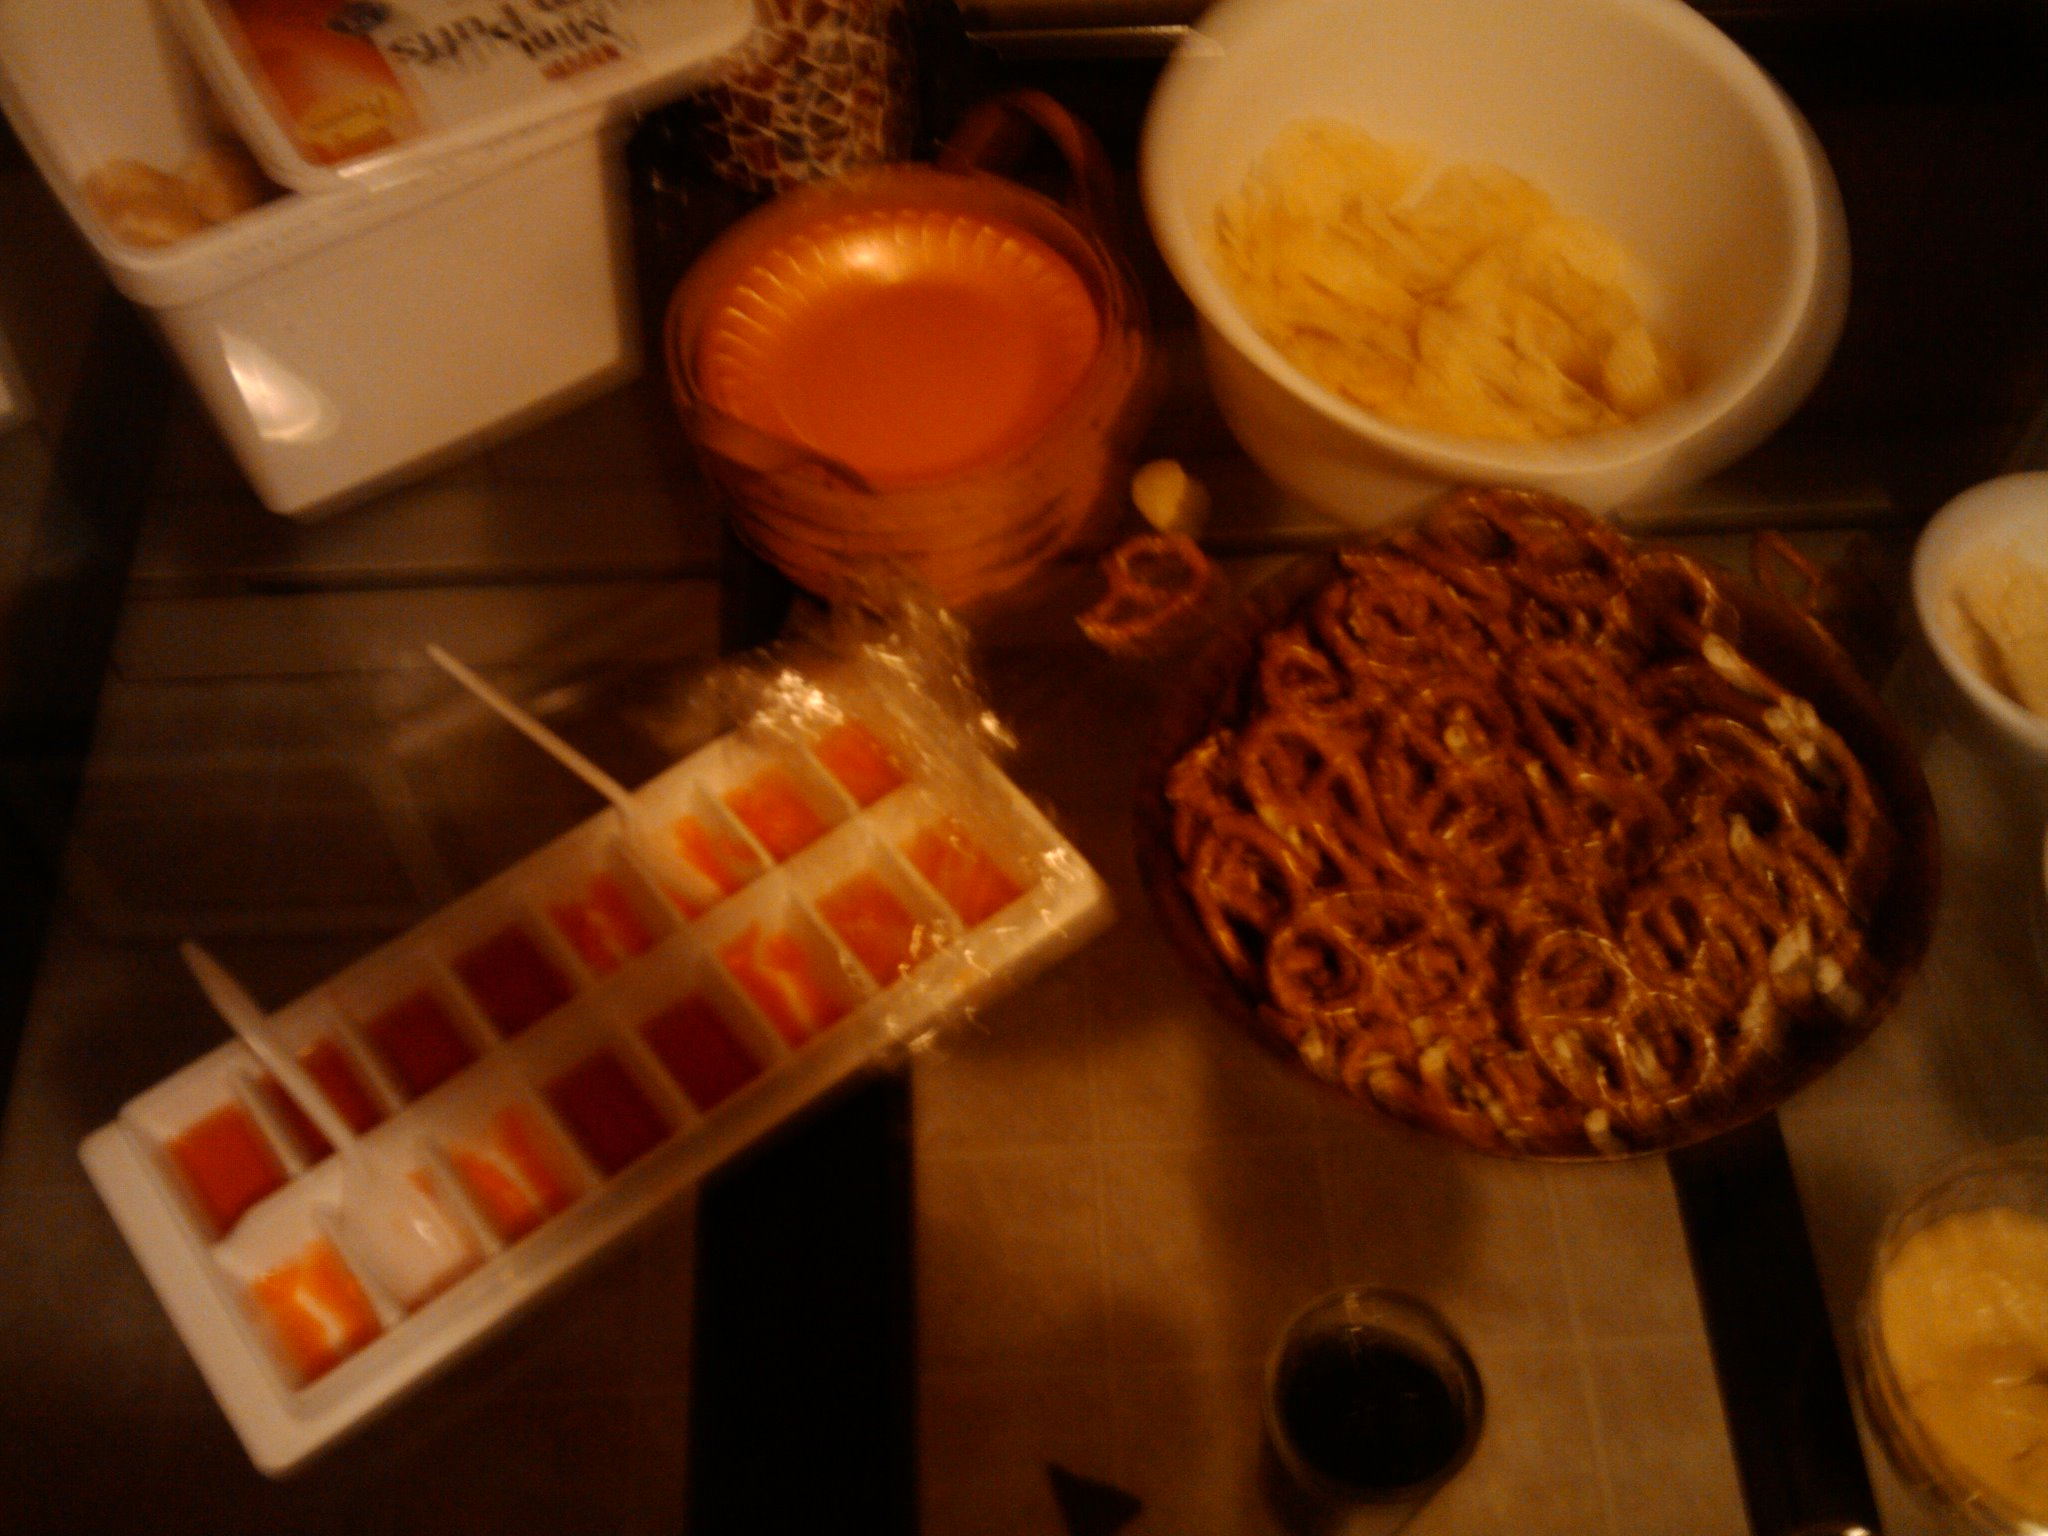 1St Ward  :: jello shots in ice tray, pretzels, potato chips = PARTAYY FAVORITES